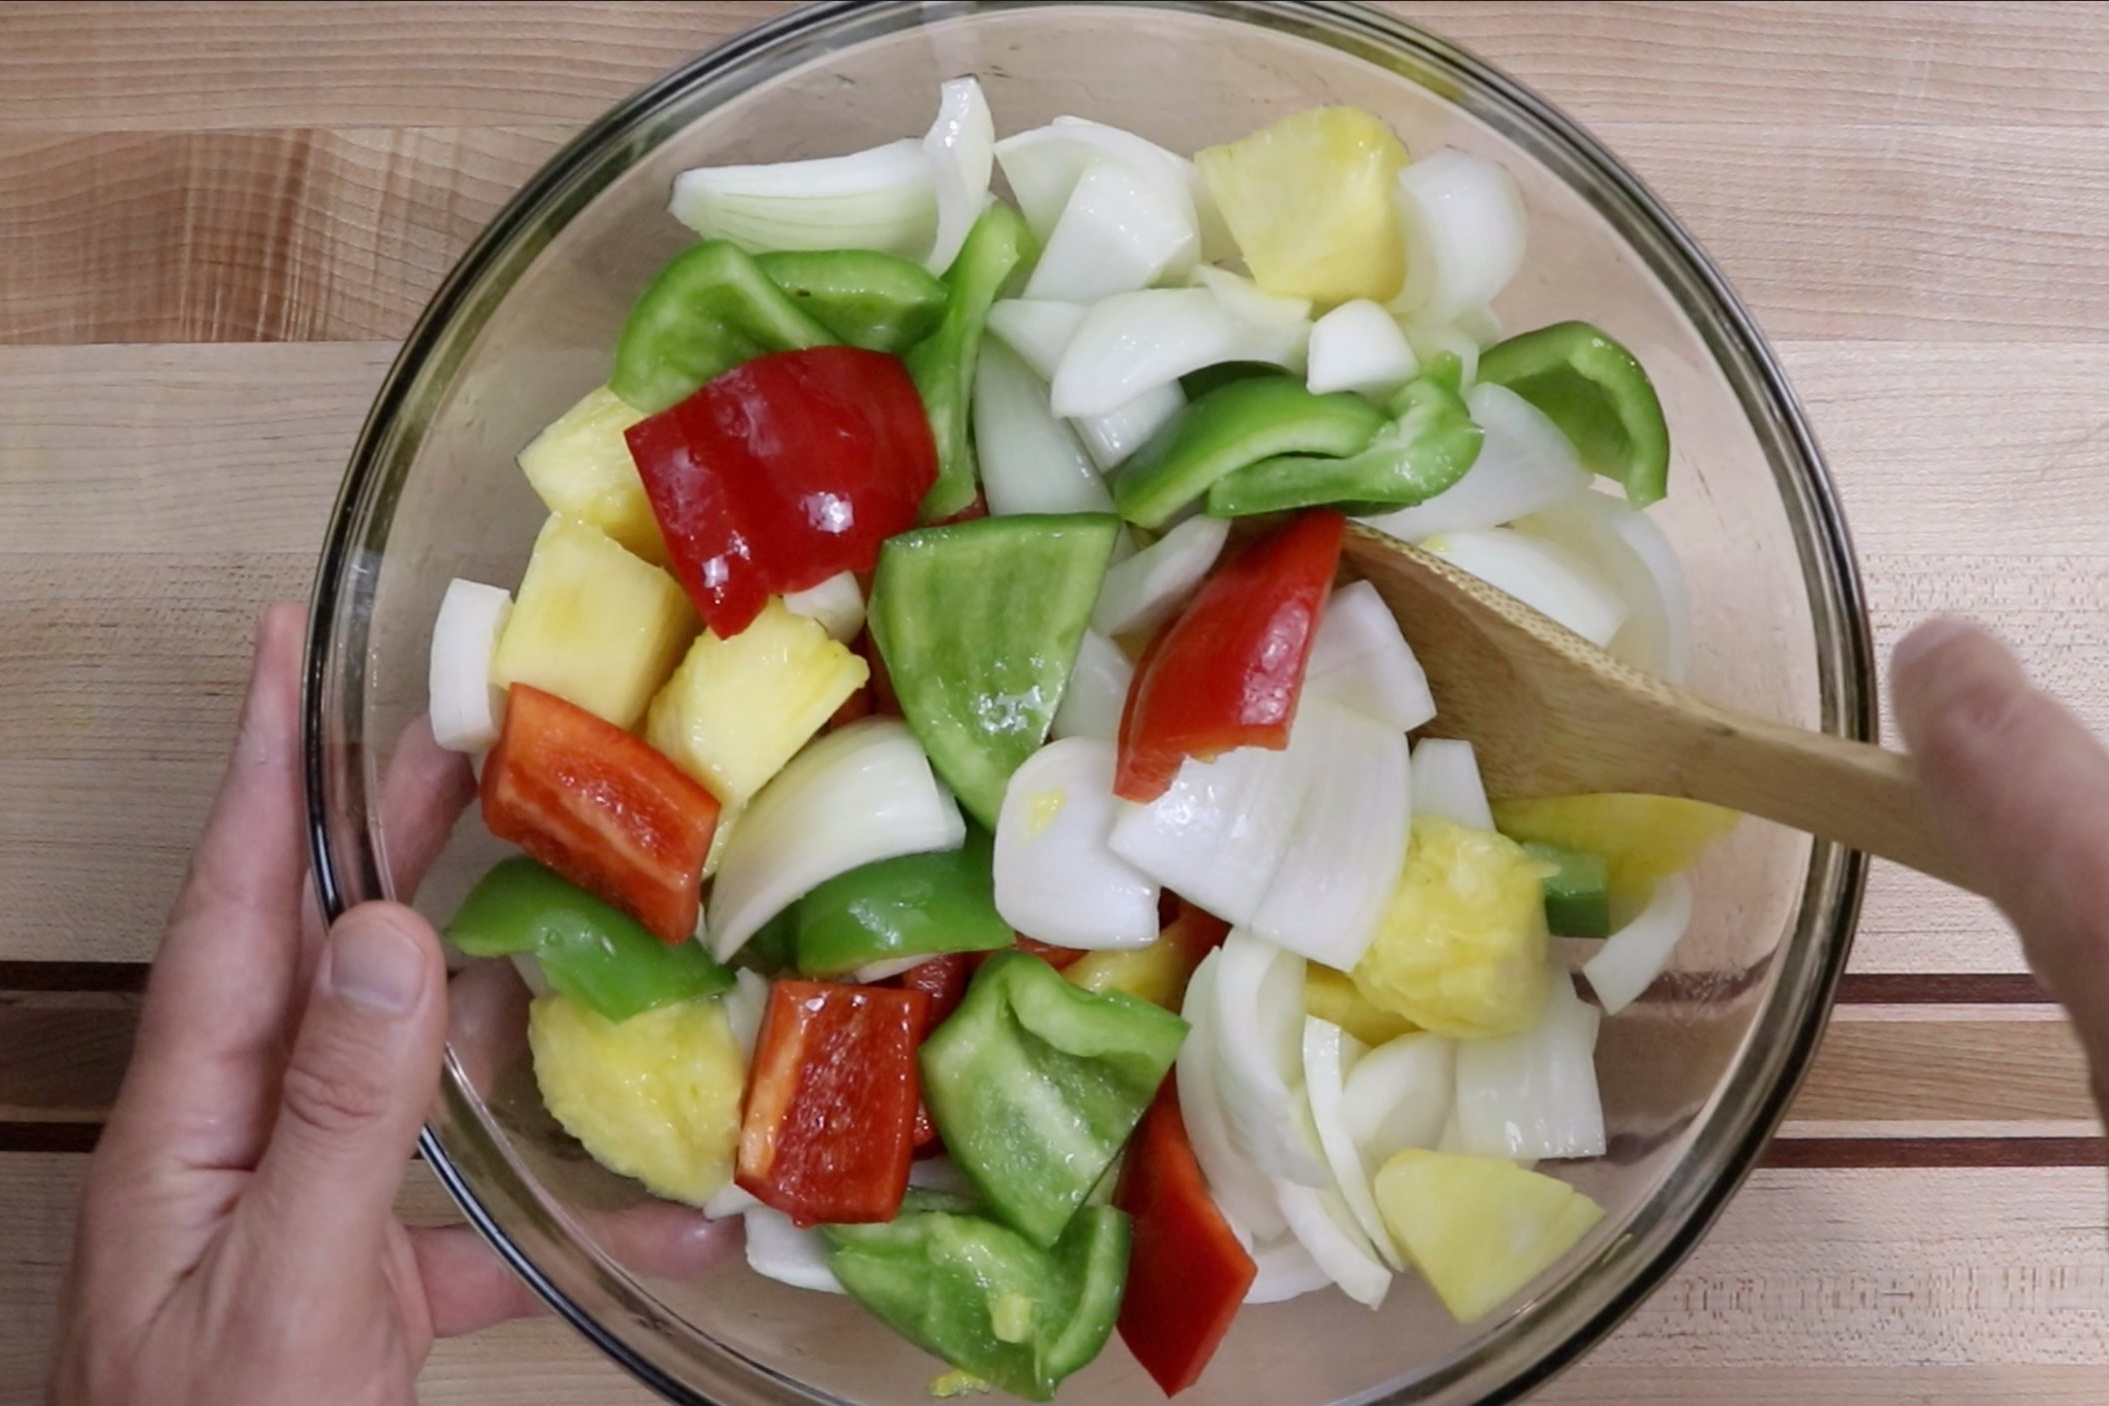 4. In a large bowl add the onions, peppers and pineapple. Stir in the olive oil making sure all pieces are coated. Set aside. -